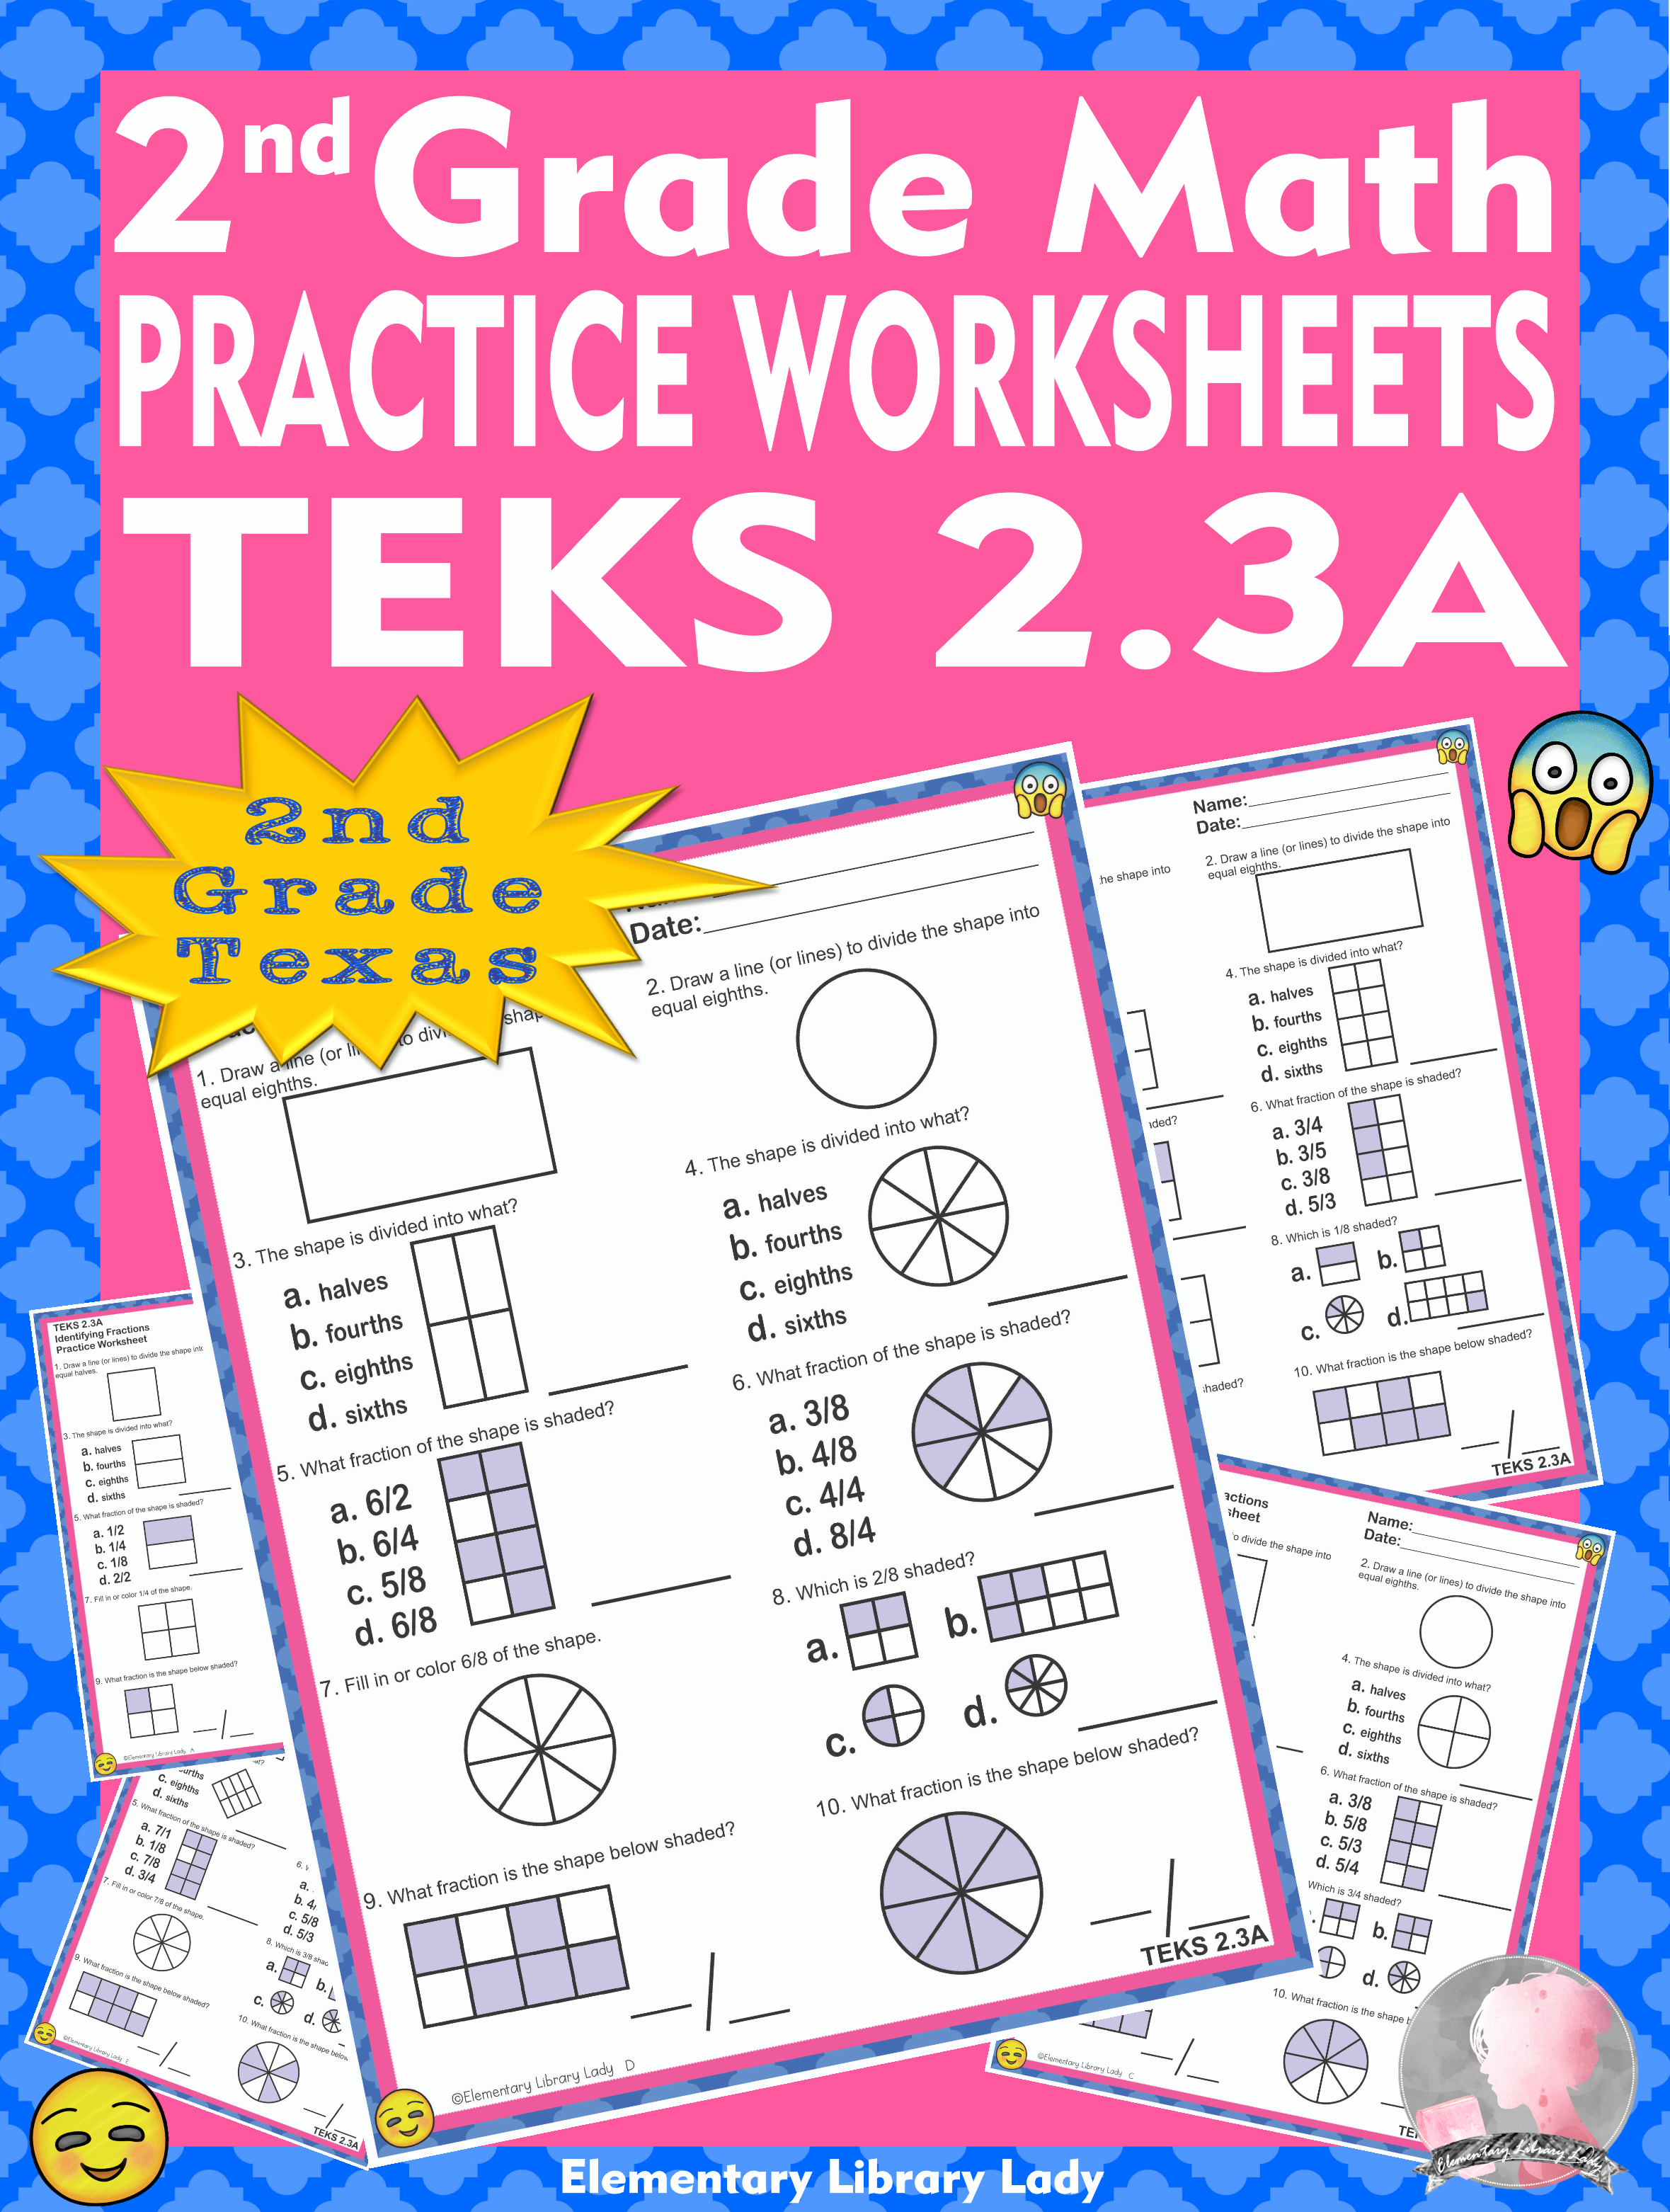 Math Teks 2 3a Texas 2nd Grade Practice Worksheets Identifying Fractions In 2021 Math Teks Math Practice Worksheets Math [ 3124 x 2359 Pixel ]